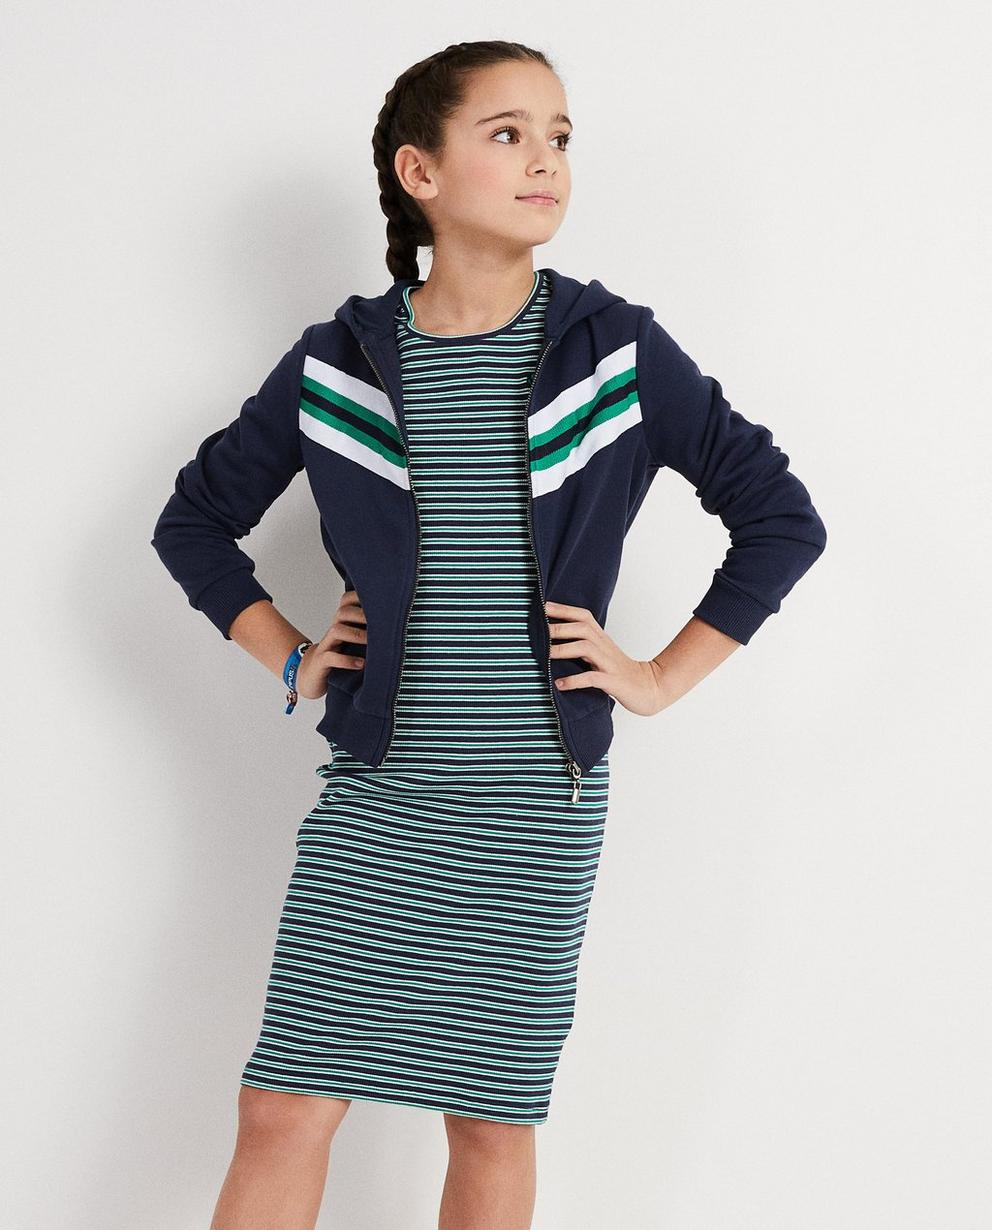 Strickjacken - Navy - Trainingsjacke mit Color-Block